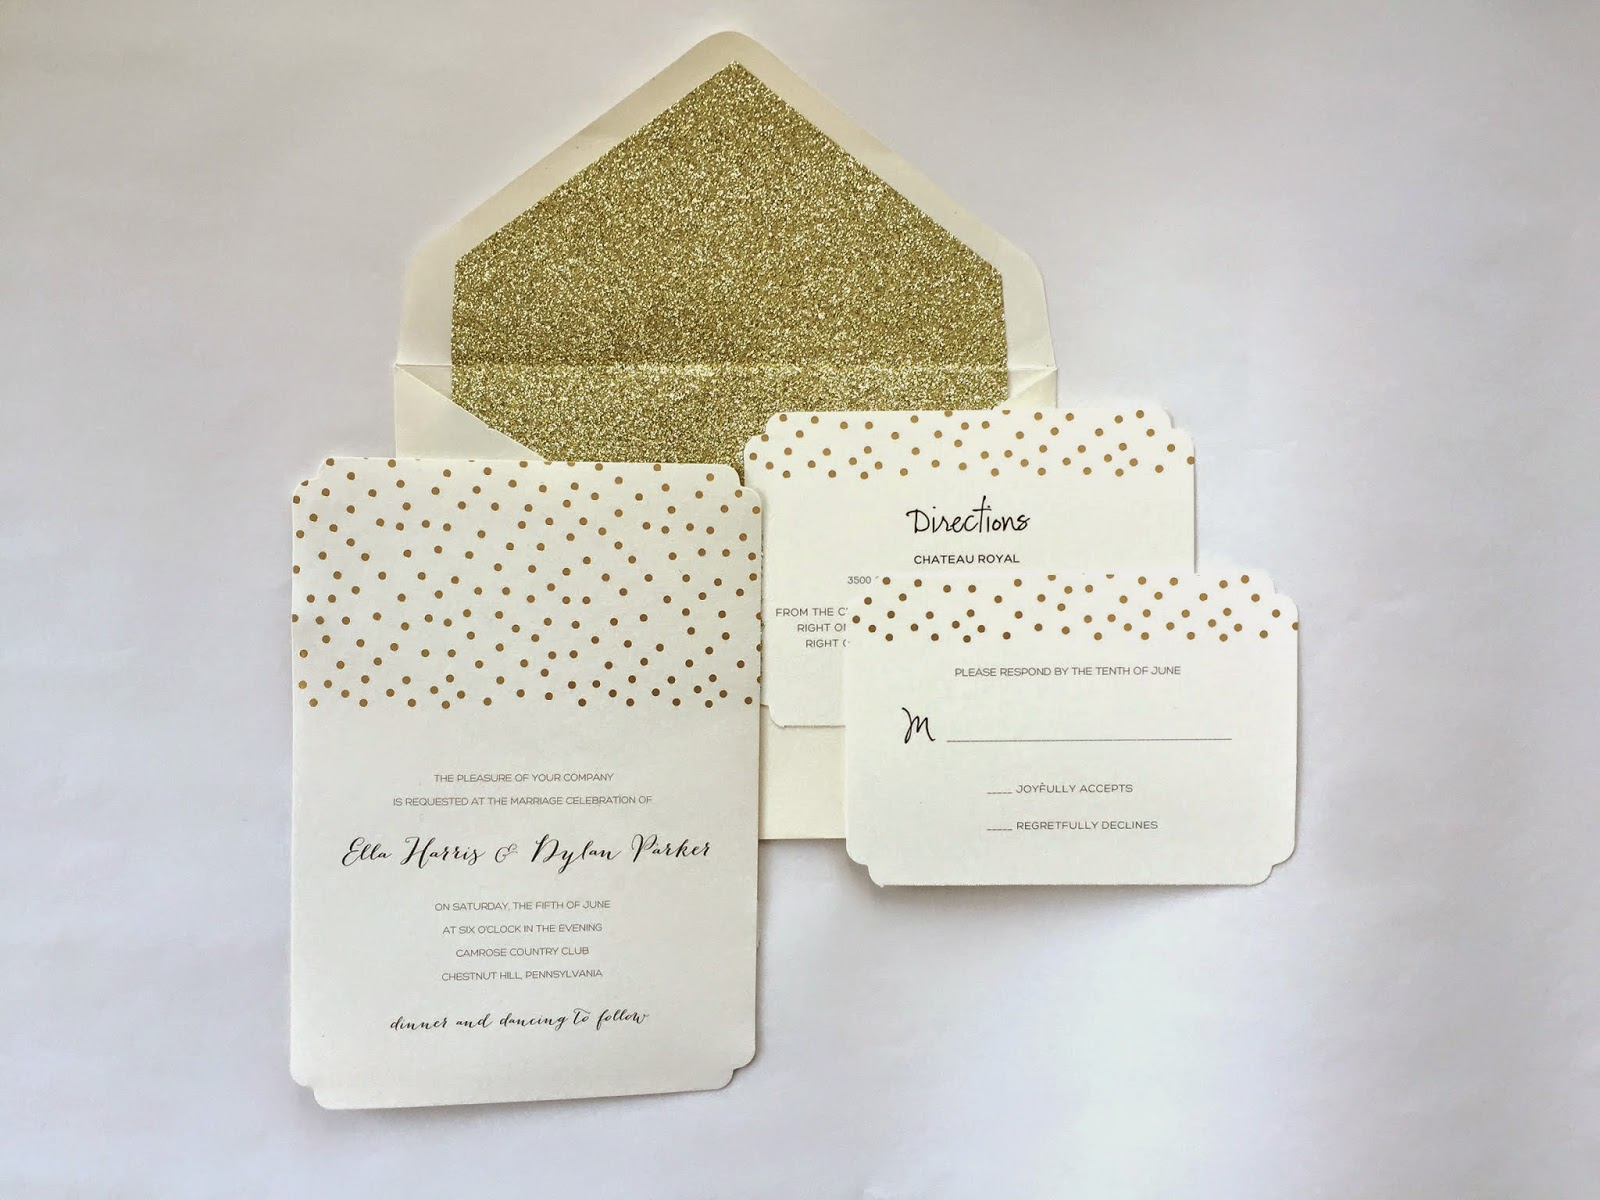 Brides Wedding Invitation Kits and get inspiration to create nice invitation ideas